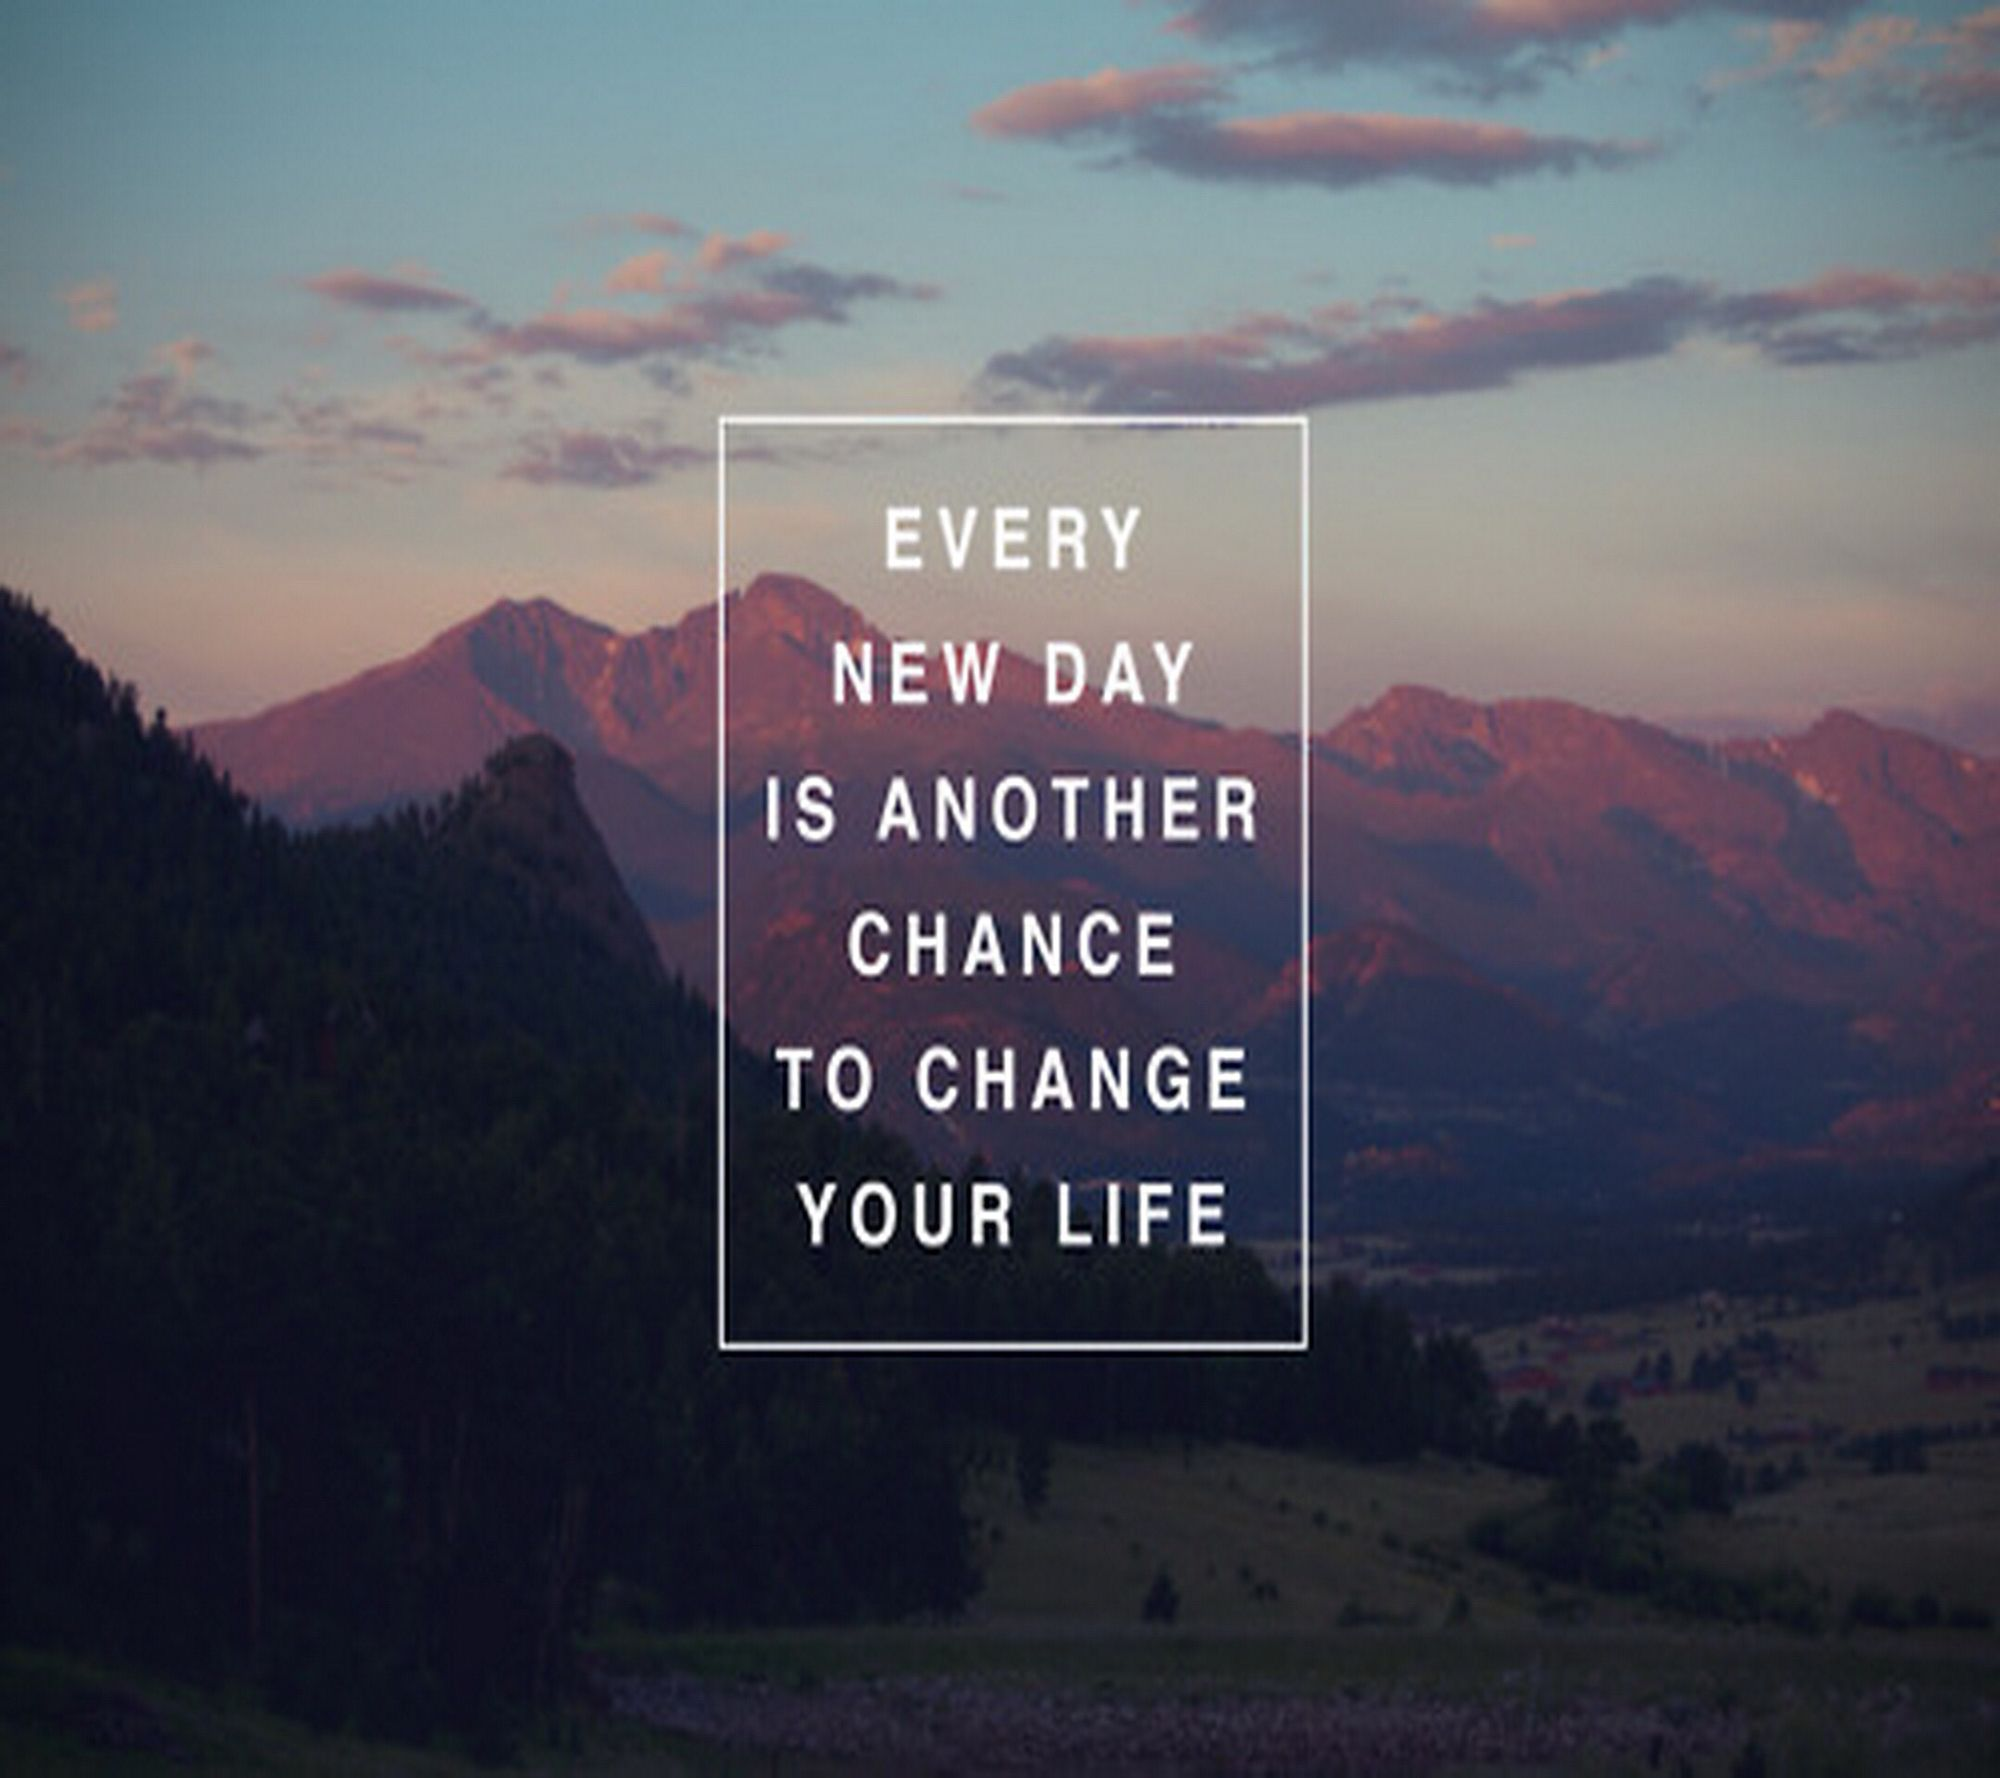 Every day is another chance to change your life. Life